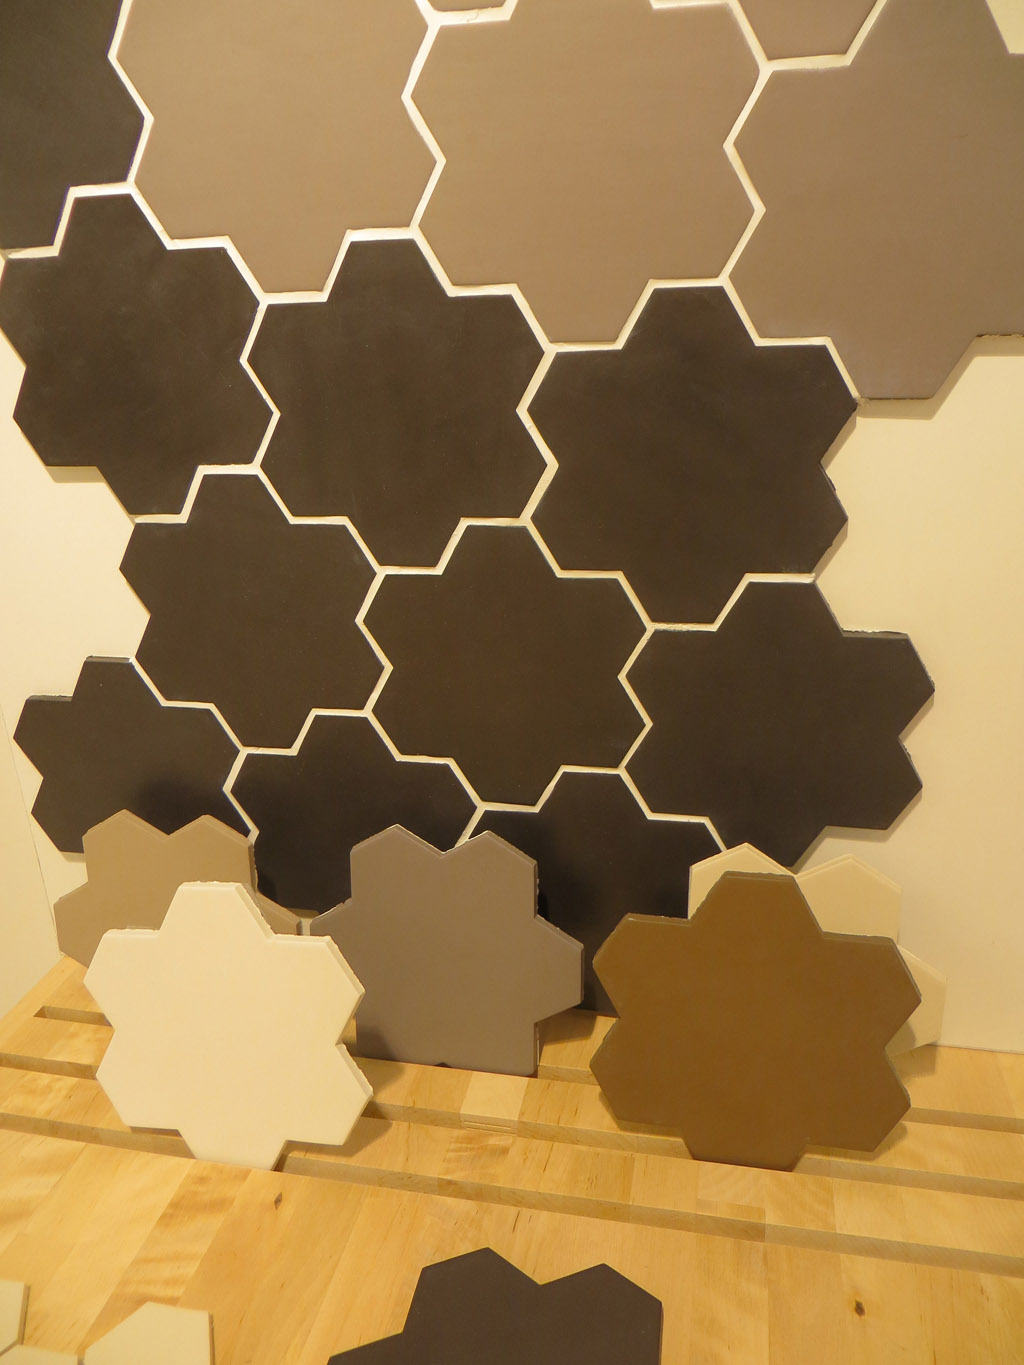 Ceramic and Porcelain Tiles by Tonalite